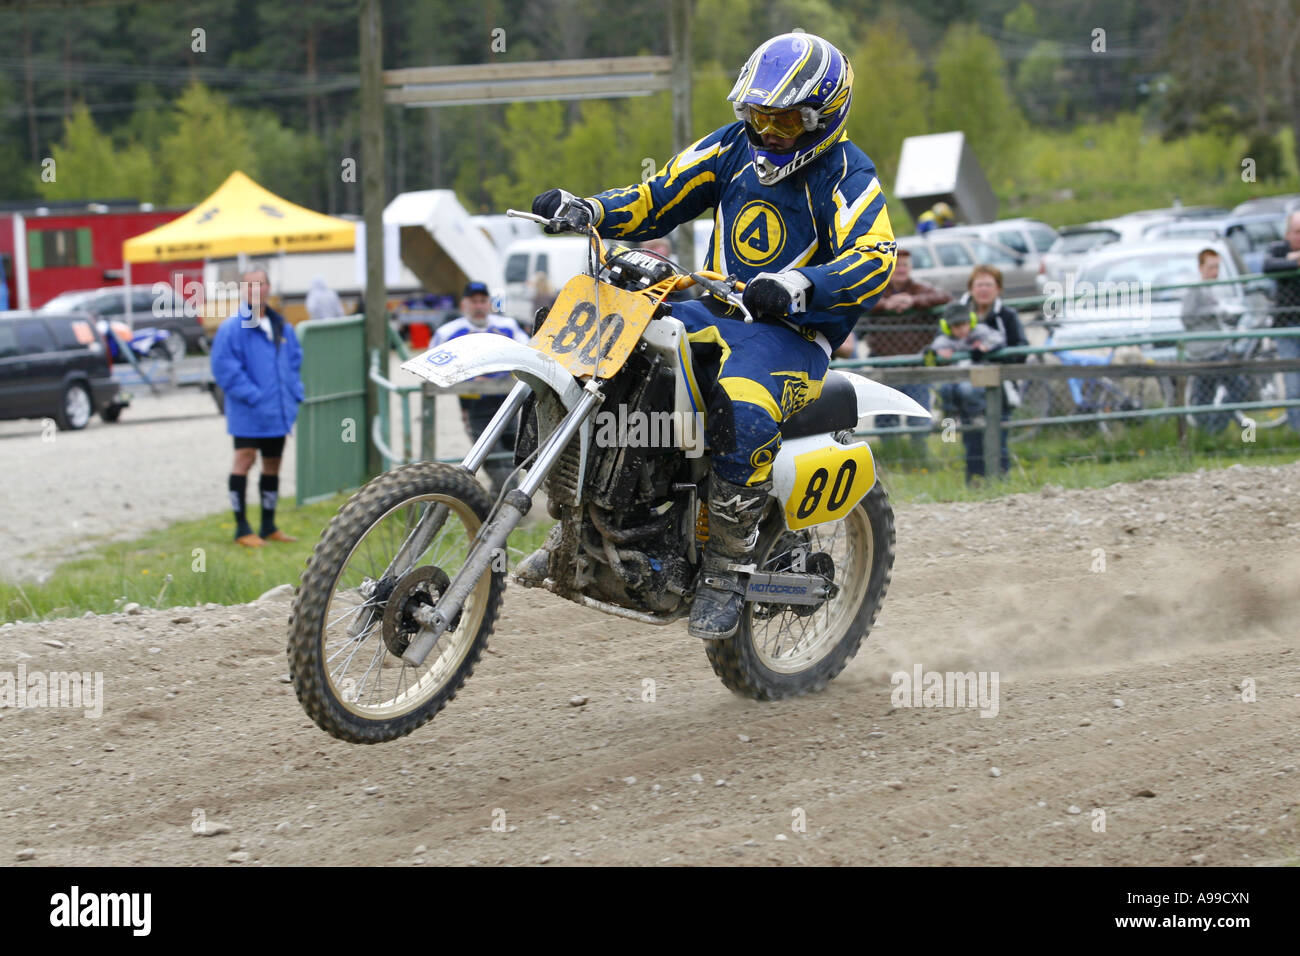 Old Dirtbike on track. - Stock Image